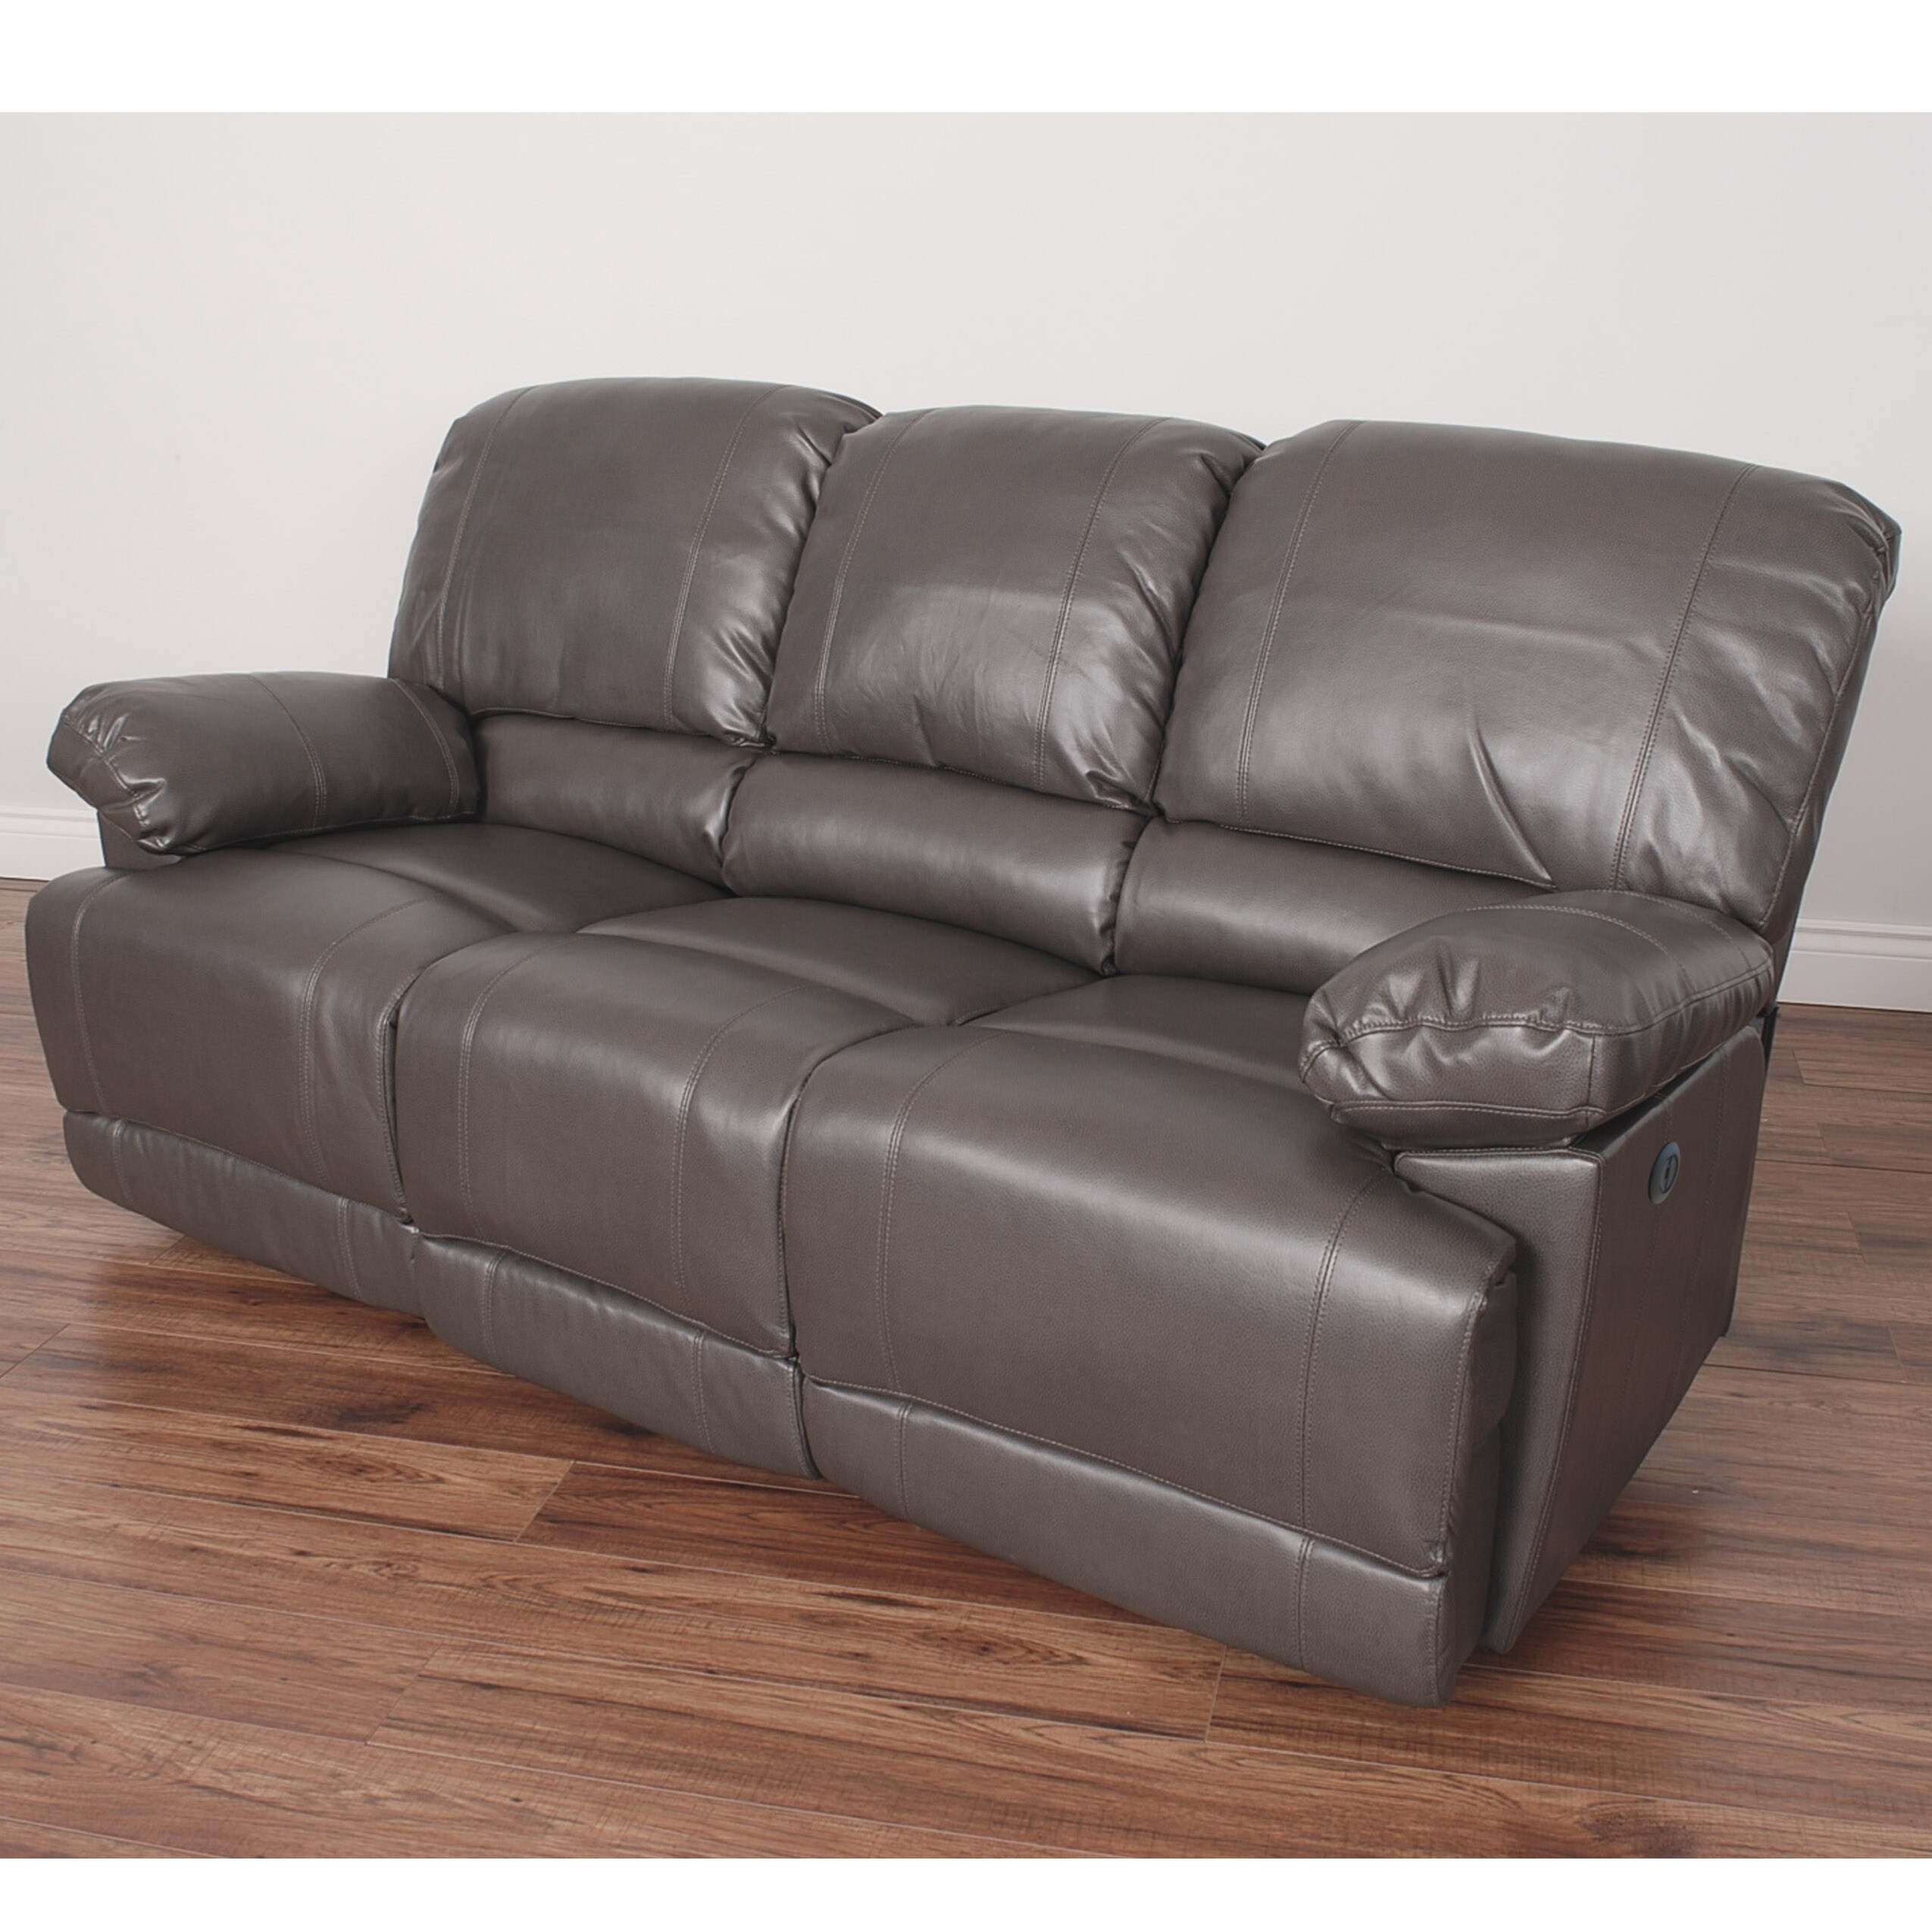 Sofa Relax Con Usb Detalles Acerca De Corliving Lea Bonded Leather Power Reclining Sofa With Usb Port